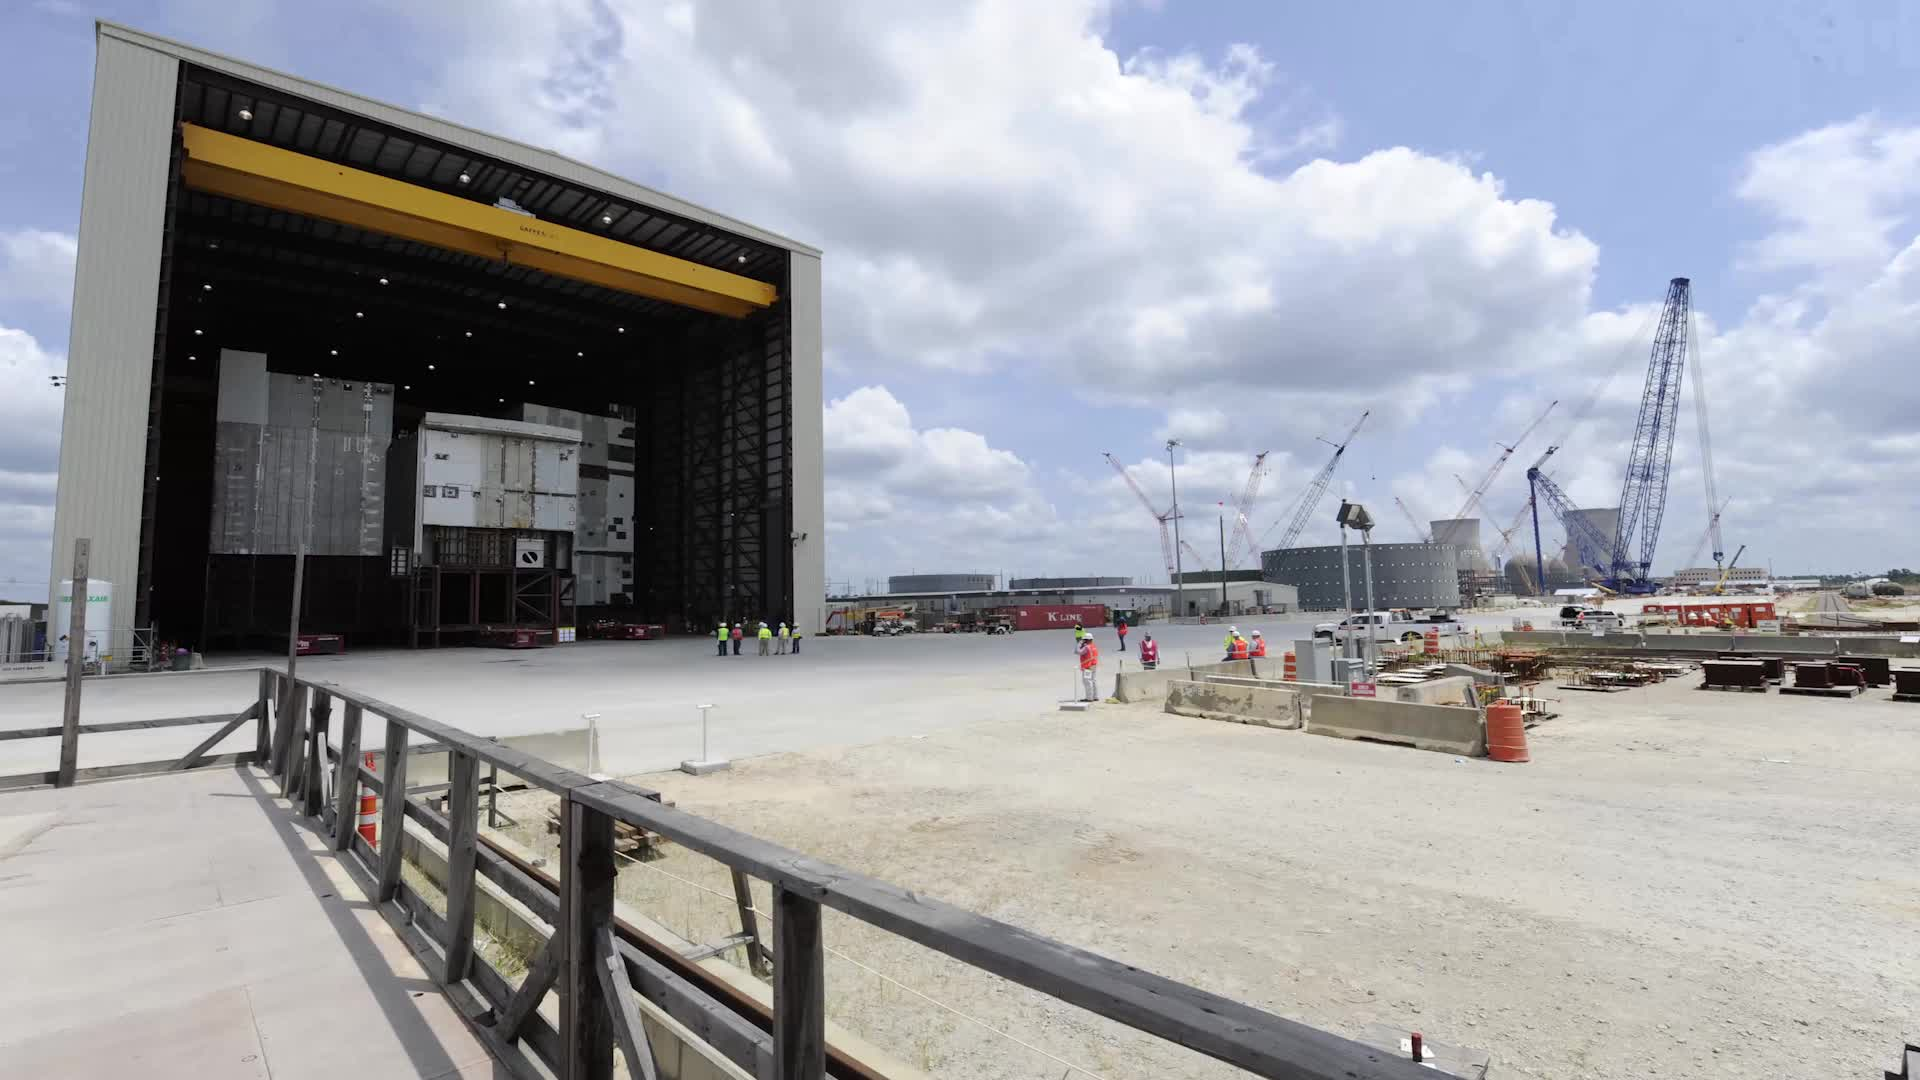 On Saturday, August 8, the 2.28 million-pound CA01 module for Unit 3 at the Plant Vogtle nuclear expansion was lifted safely into place by one of the largest cranes in the world. The CA01 module houses the two steam generators for Unit 3 and was assembled onsite at the construction site near Waynesboro, Georgia.